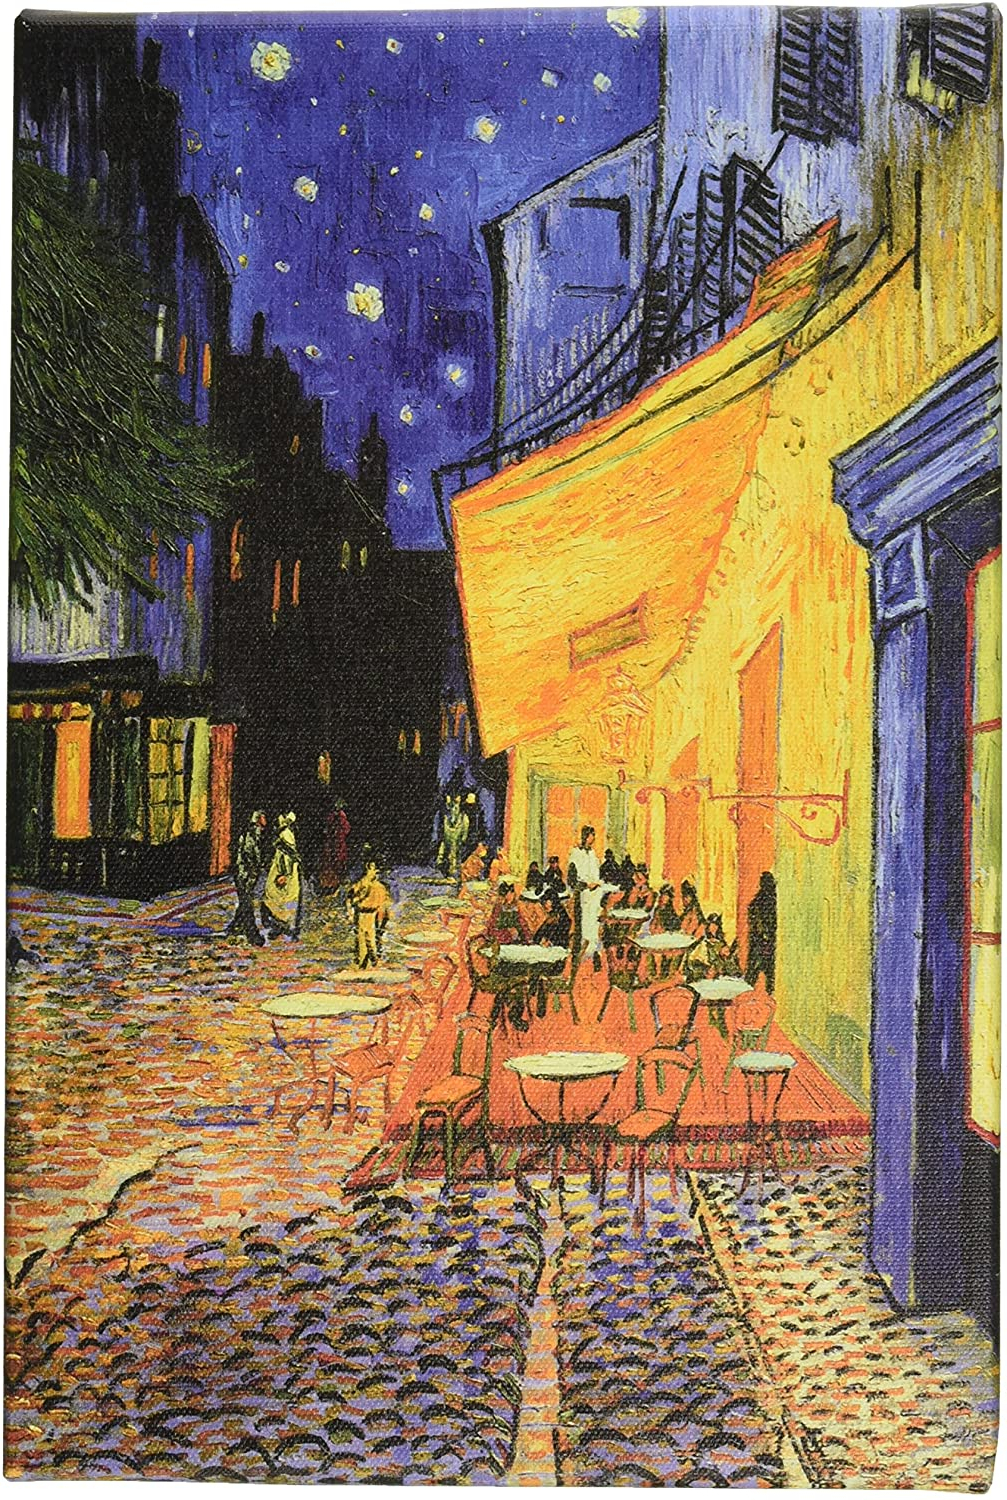 Blended Fabric Van Gogh Terrace Wall Hangings With 2020 Icanvasart The Cafe Terrace On The Place Du Forum, Arles, At Night Canvas Art Printvincent Van Gogh, 1218 Inch (View 6 of 20)